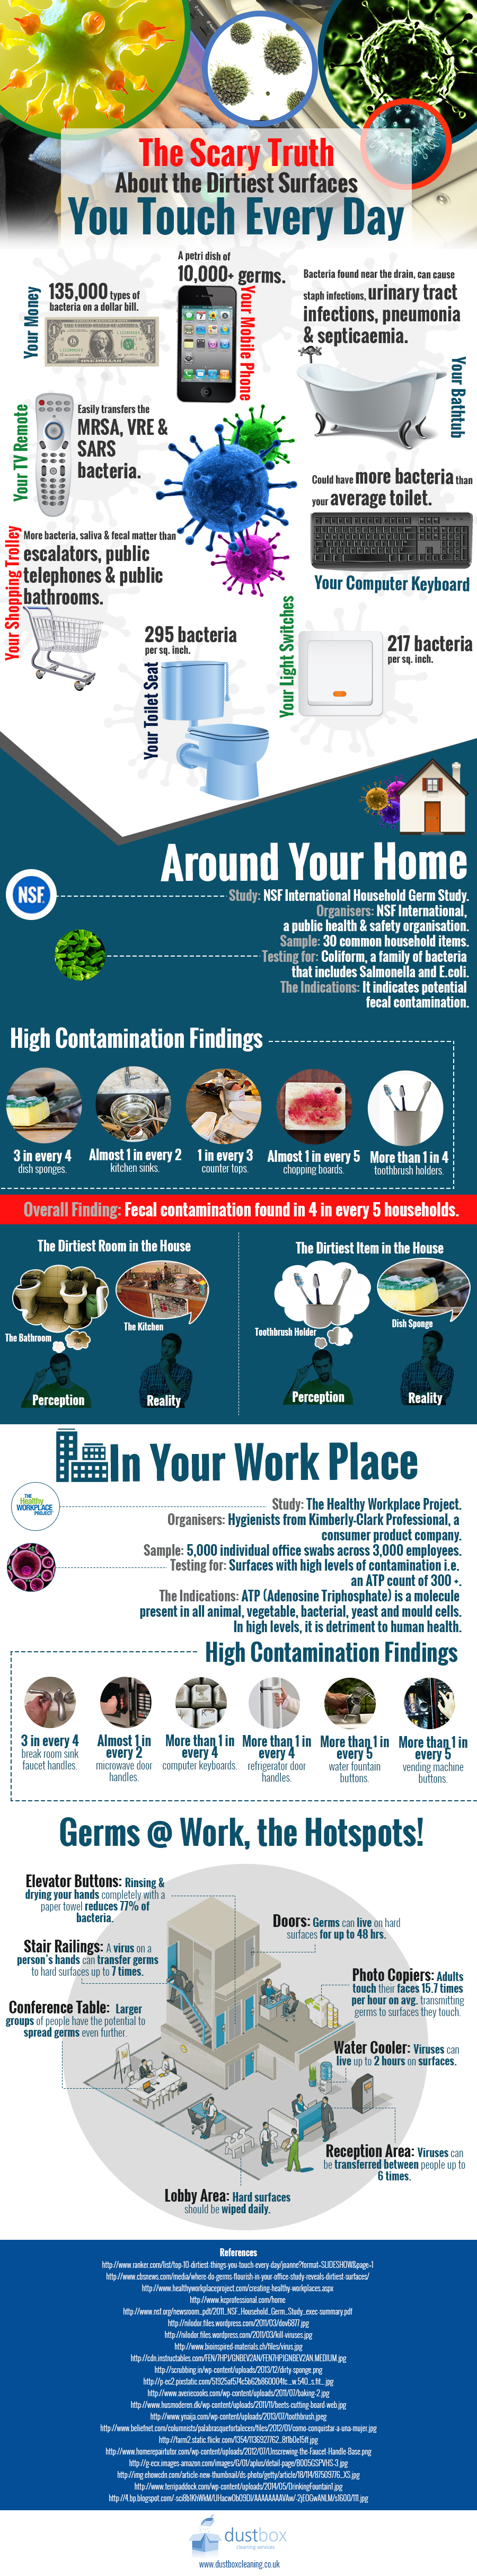 Dirtiest-Surfaces-Infographic (1)